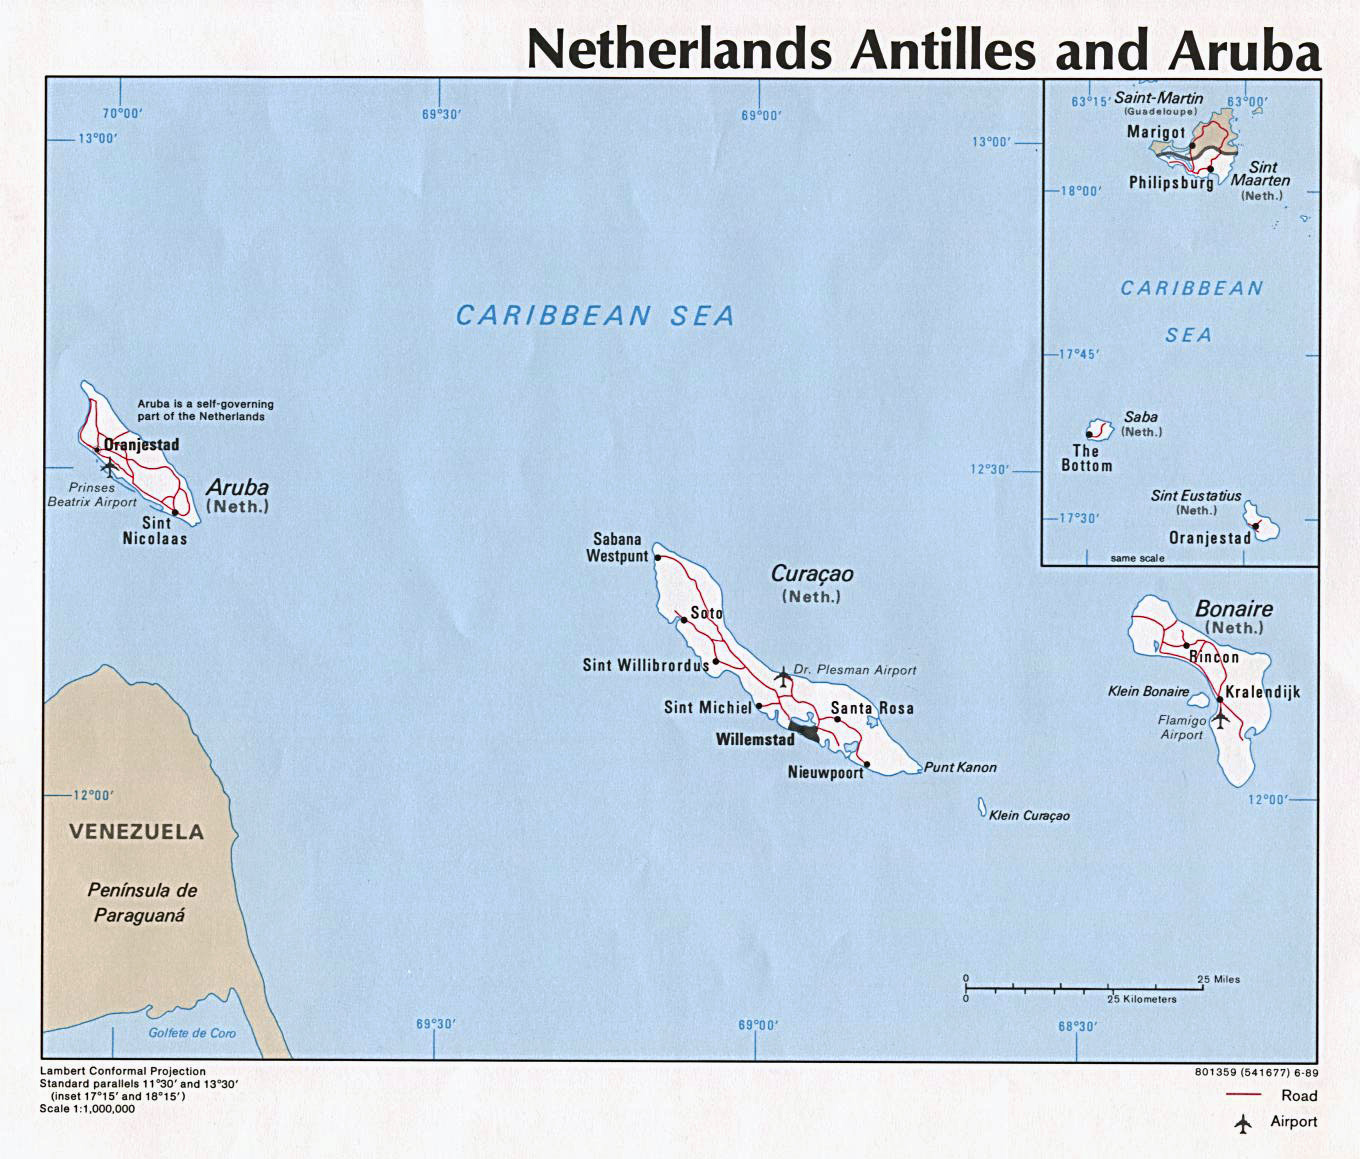 Detailed political map of Netherlands Antilles and Aruba